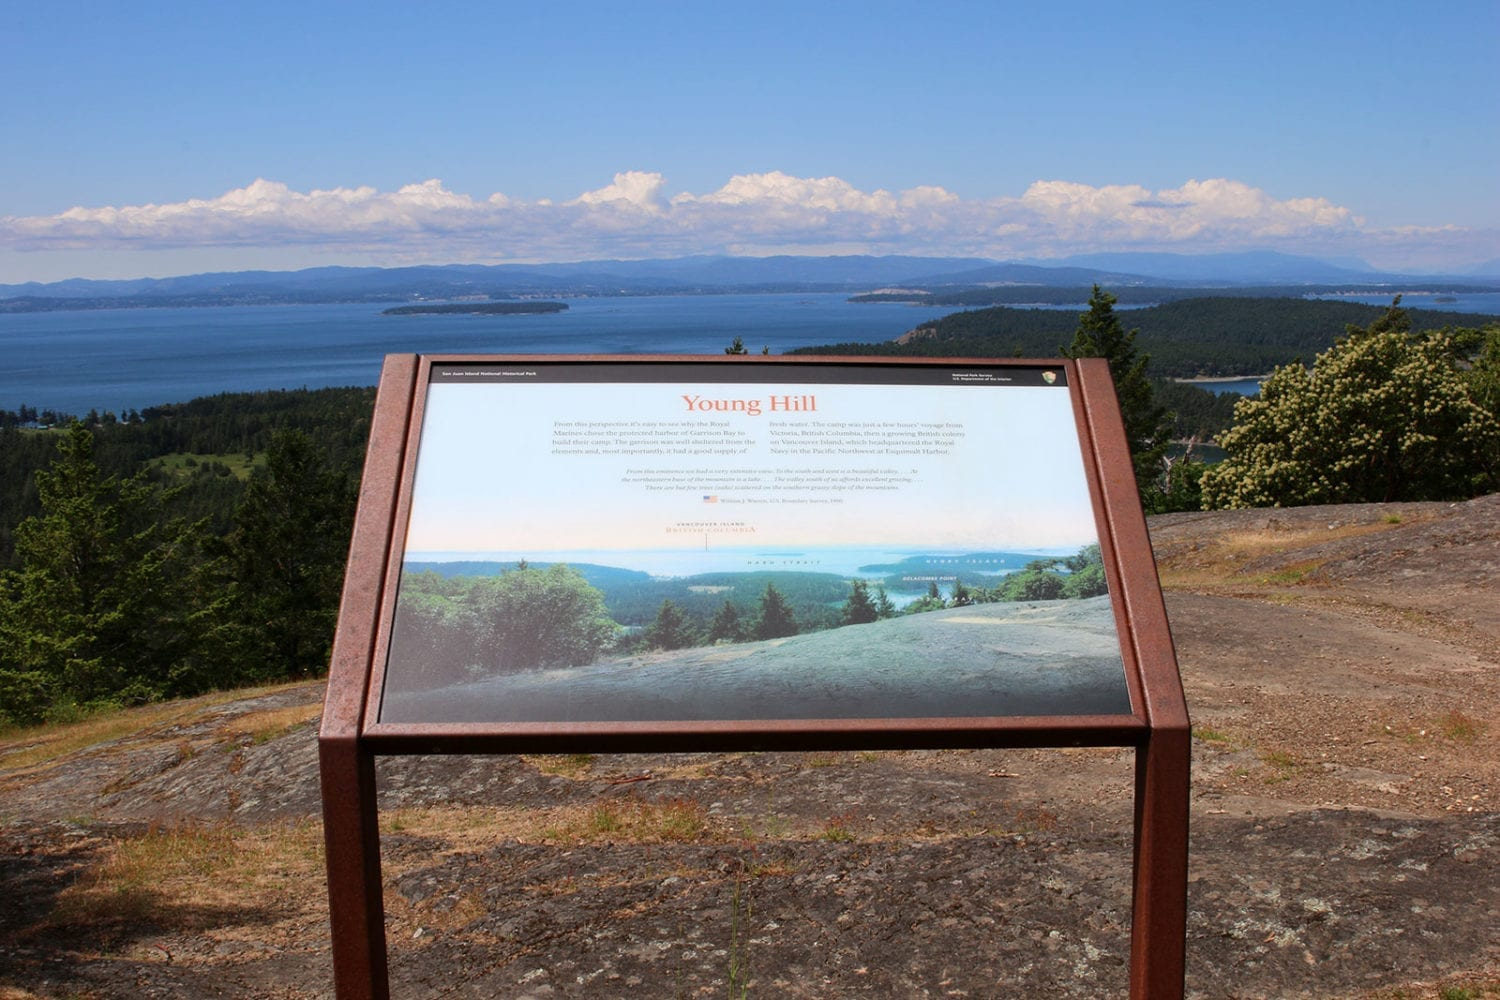 Young Hill views and sign